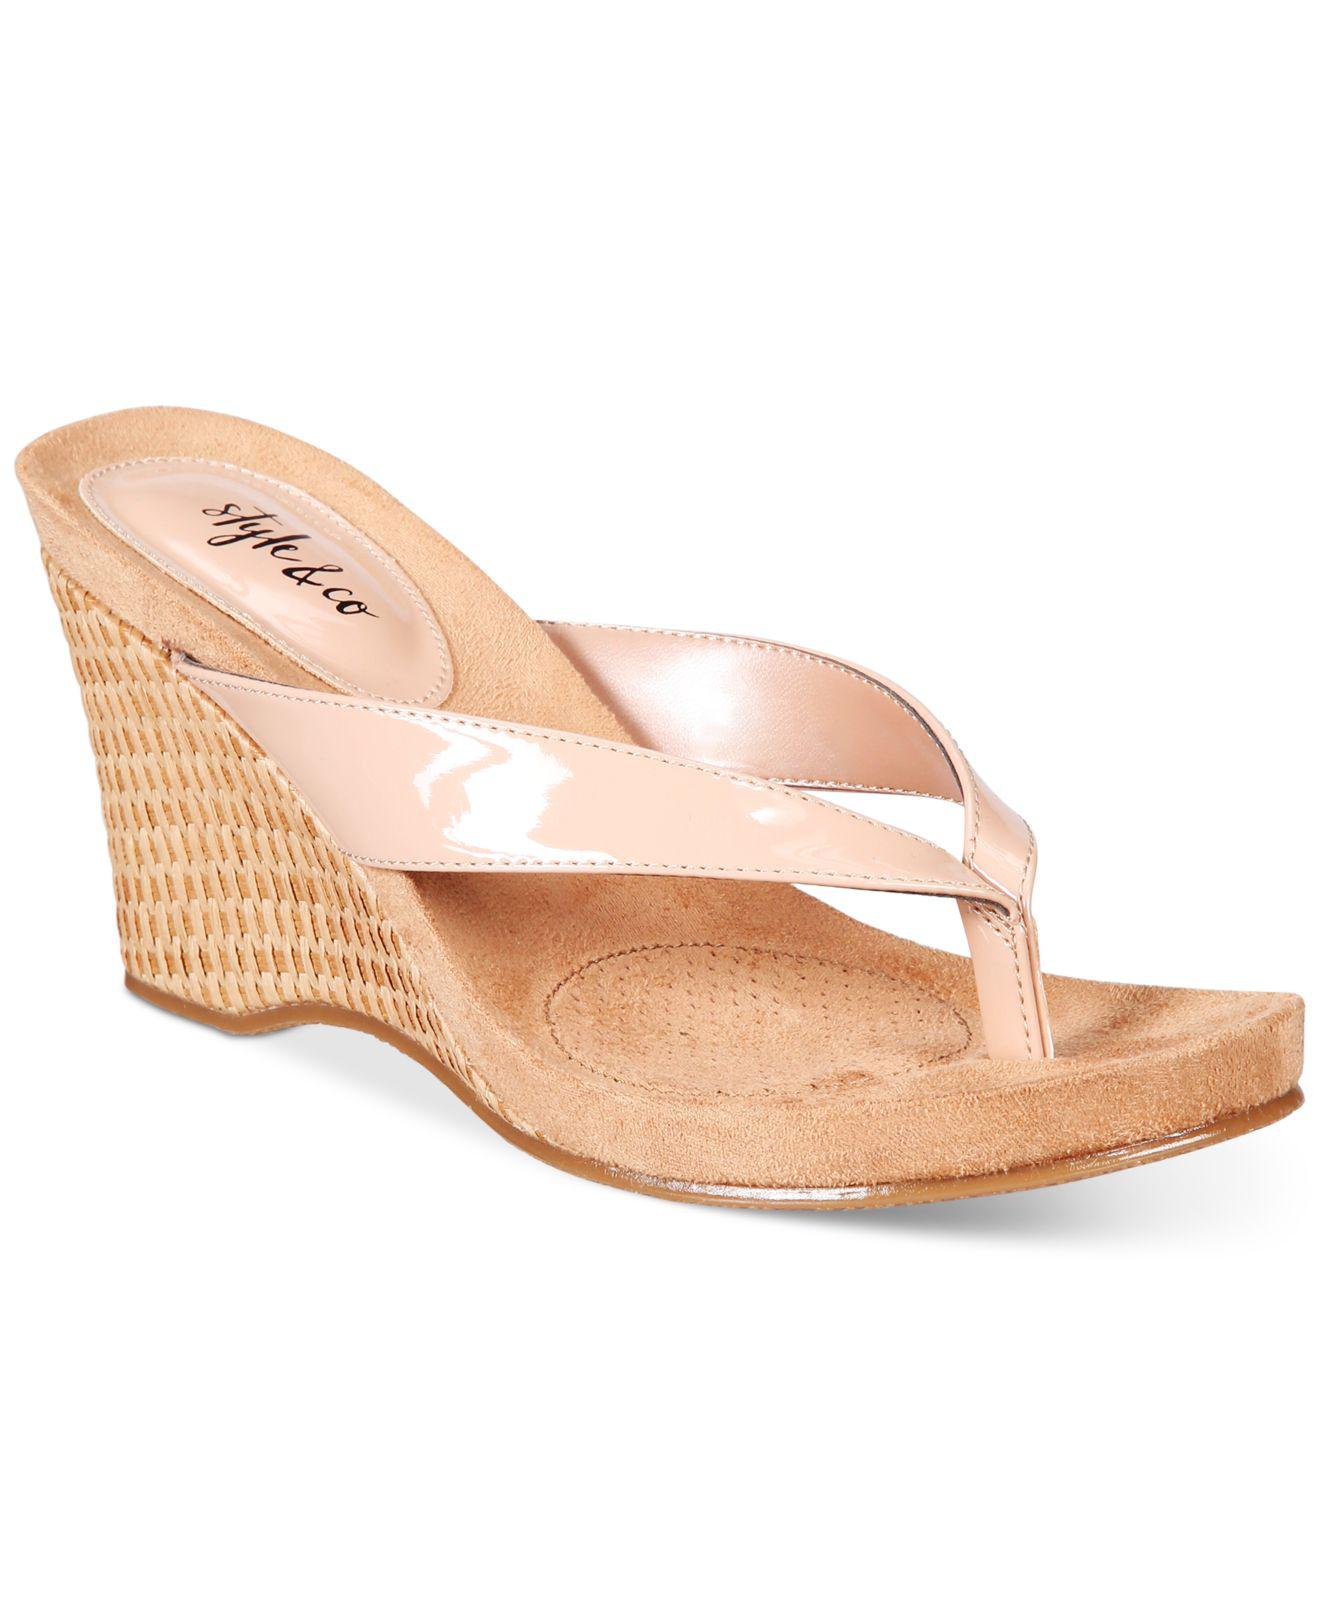 8d2687c2999 Lyst - Style   Co. Chicklet Wedge Sandals in Natural